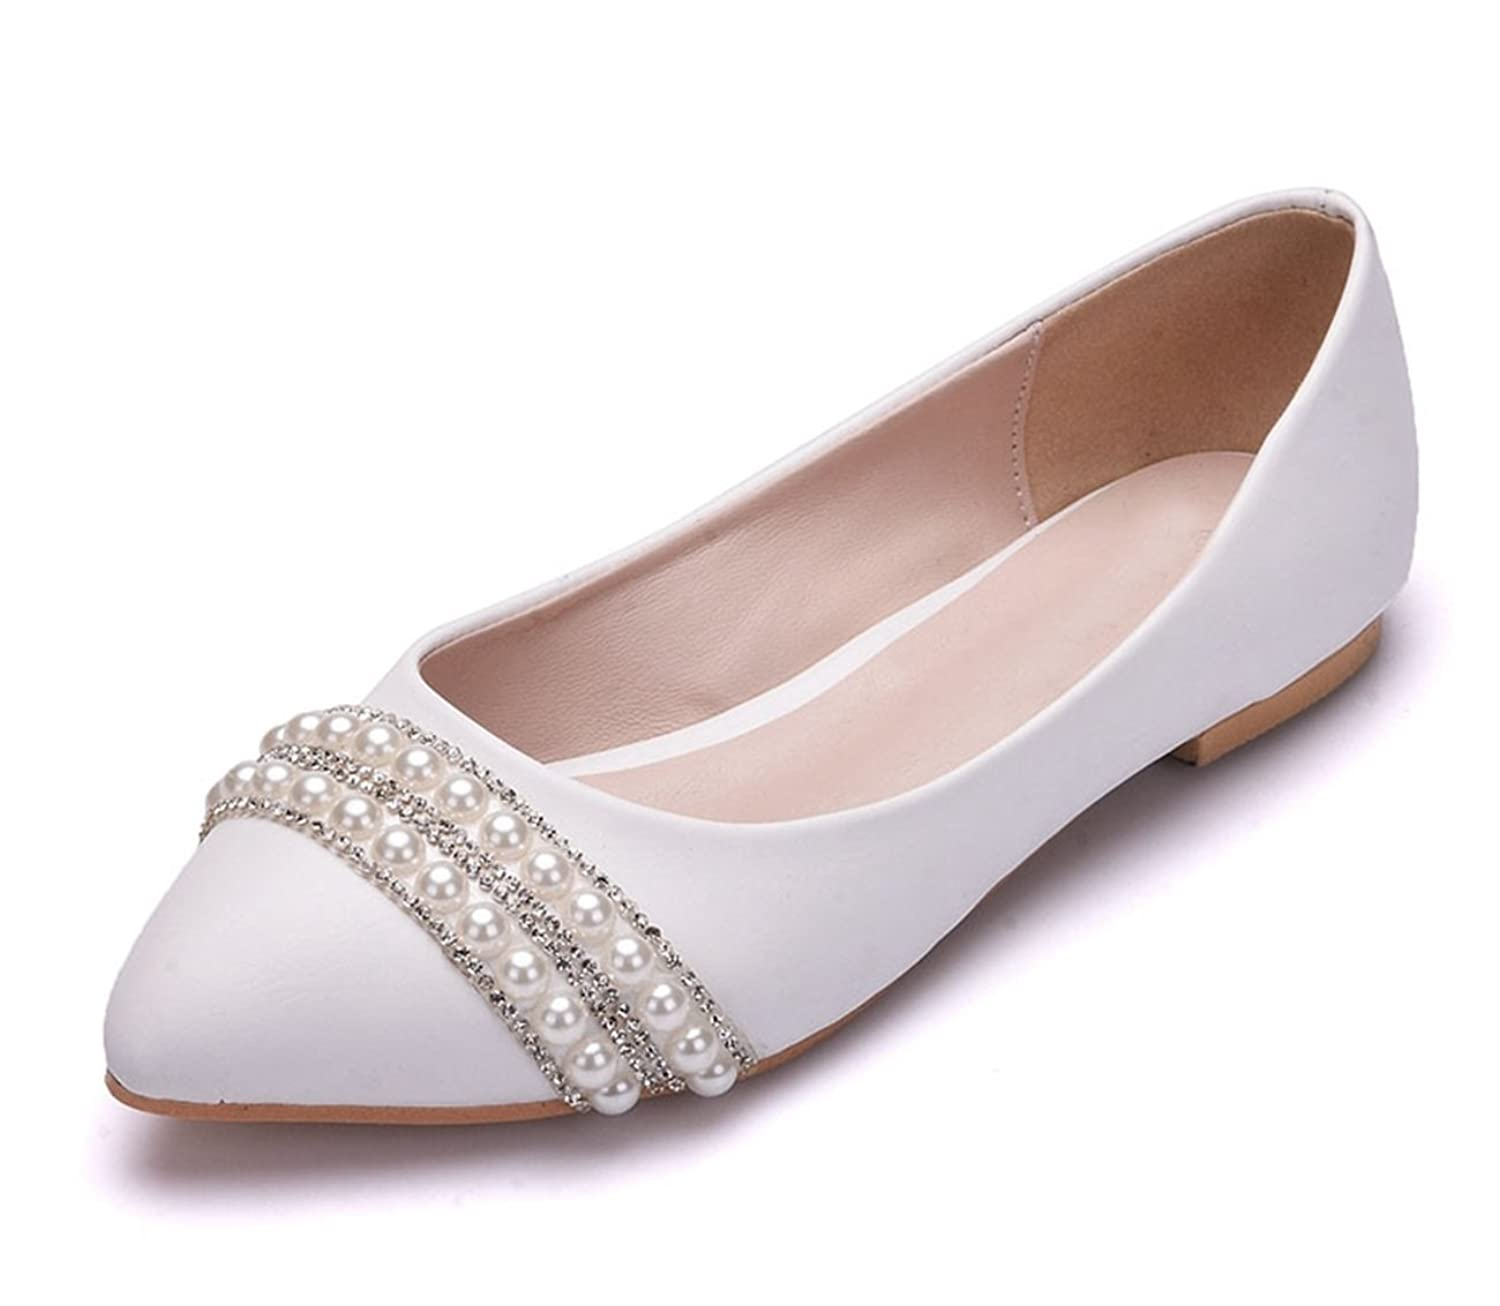 0c81de11fa4 cheap Minishion Womens Poited Toe Beaded Satin Wedding Dress Ballet Flats